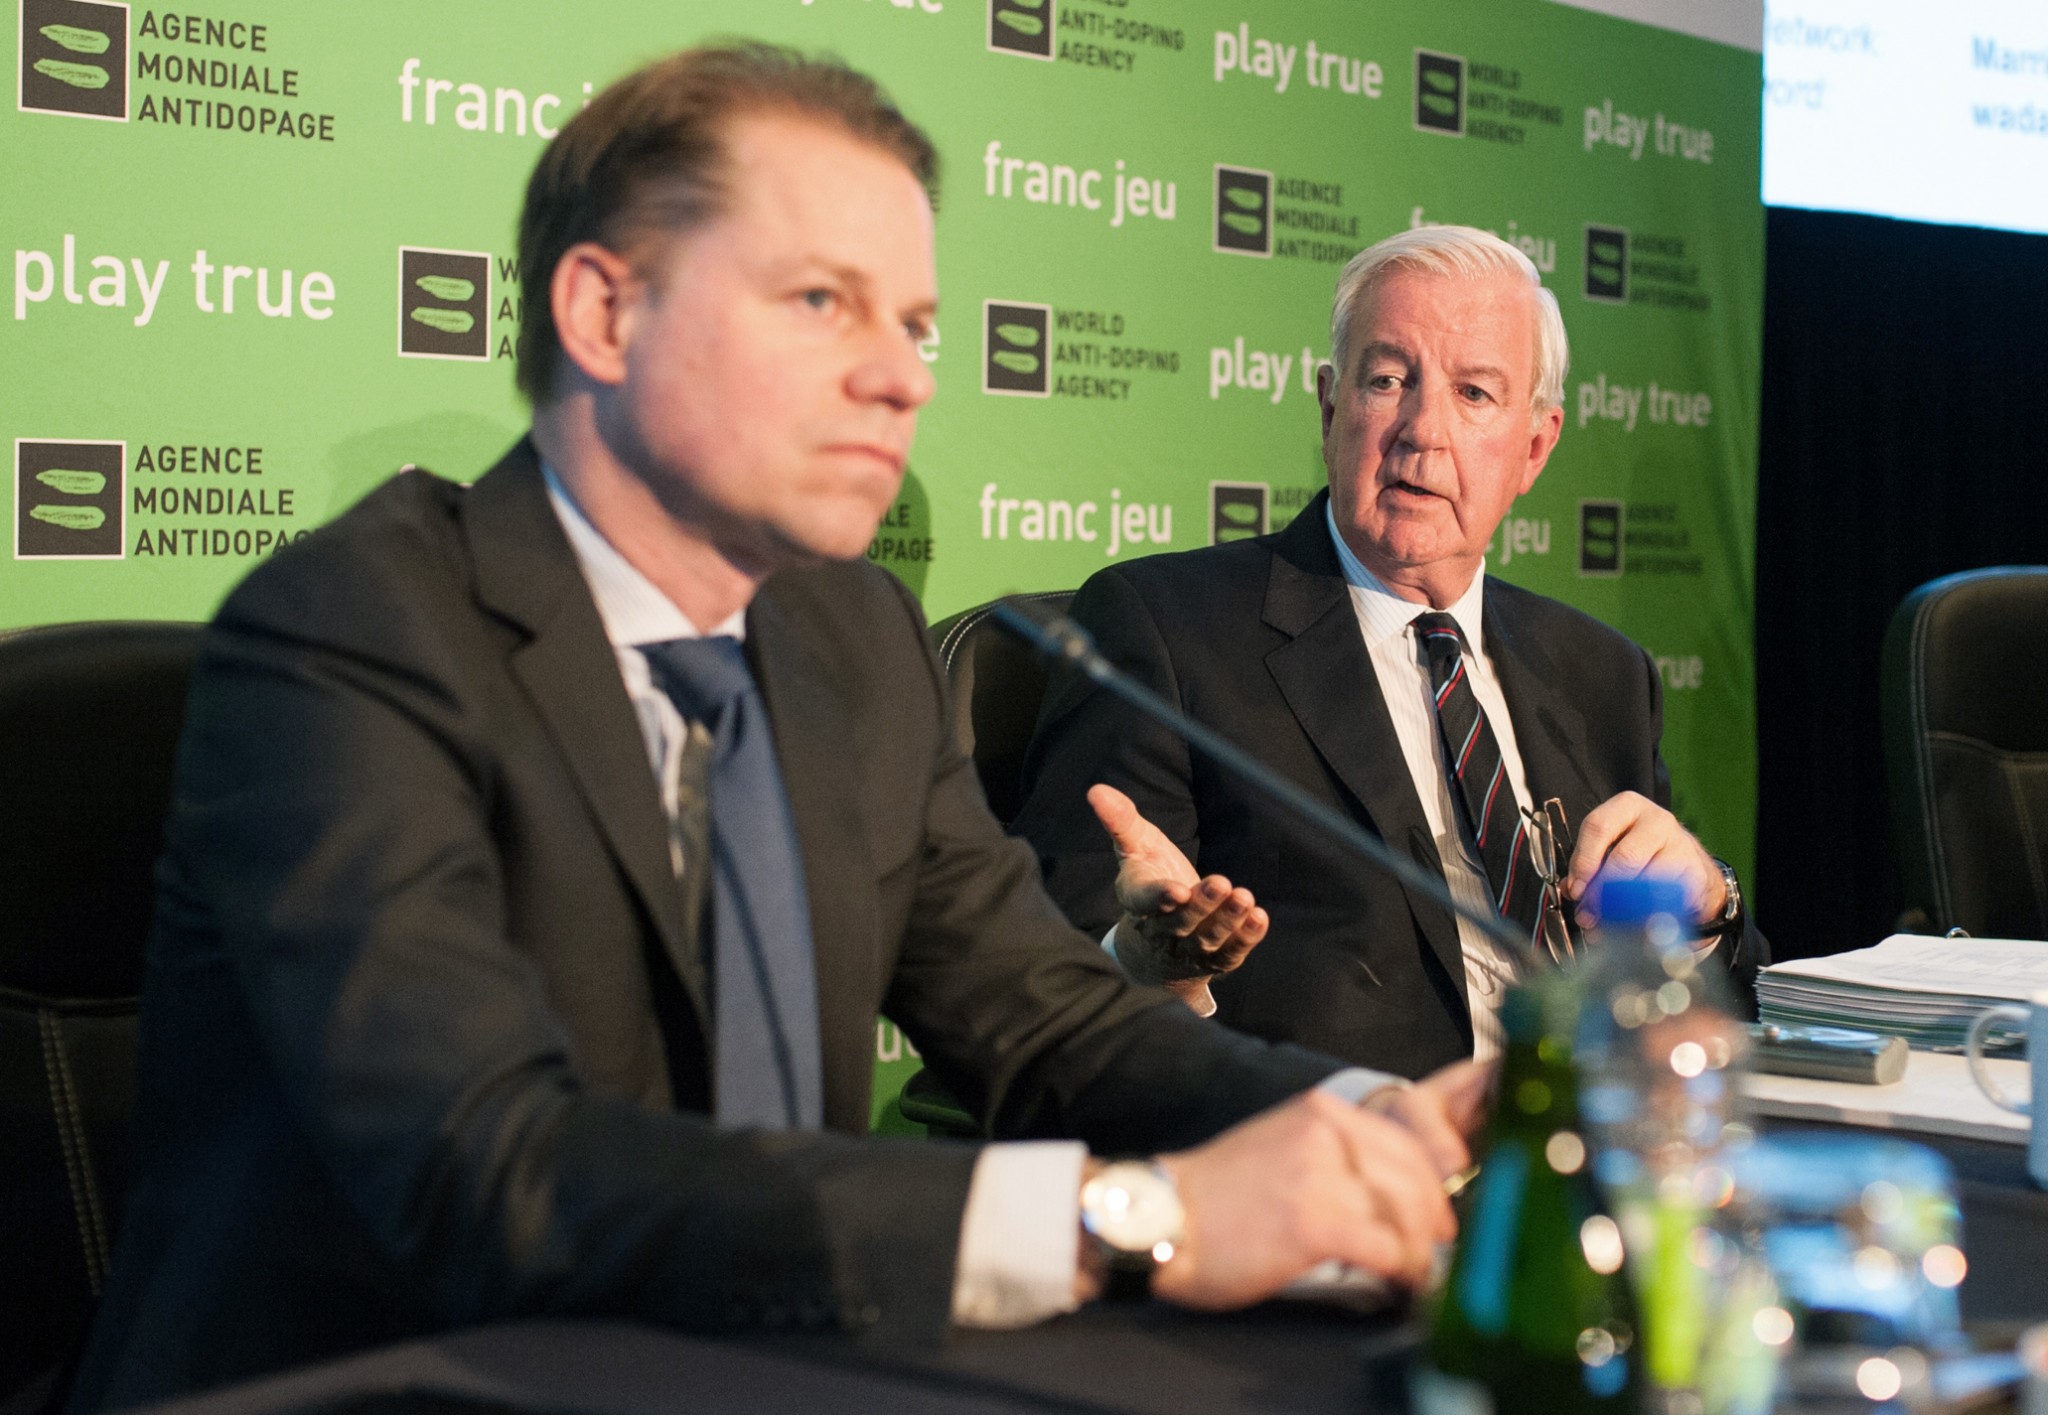 WADA leadership have been criticised following the decision to reinstate RUSADA ©Getty Images